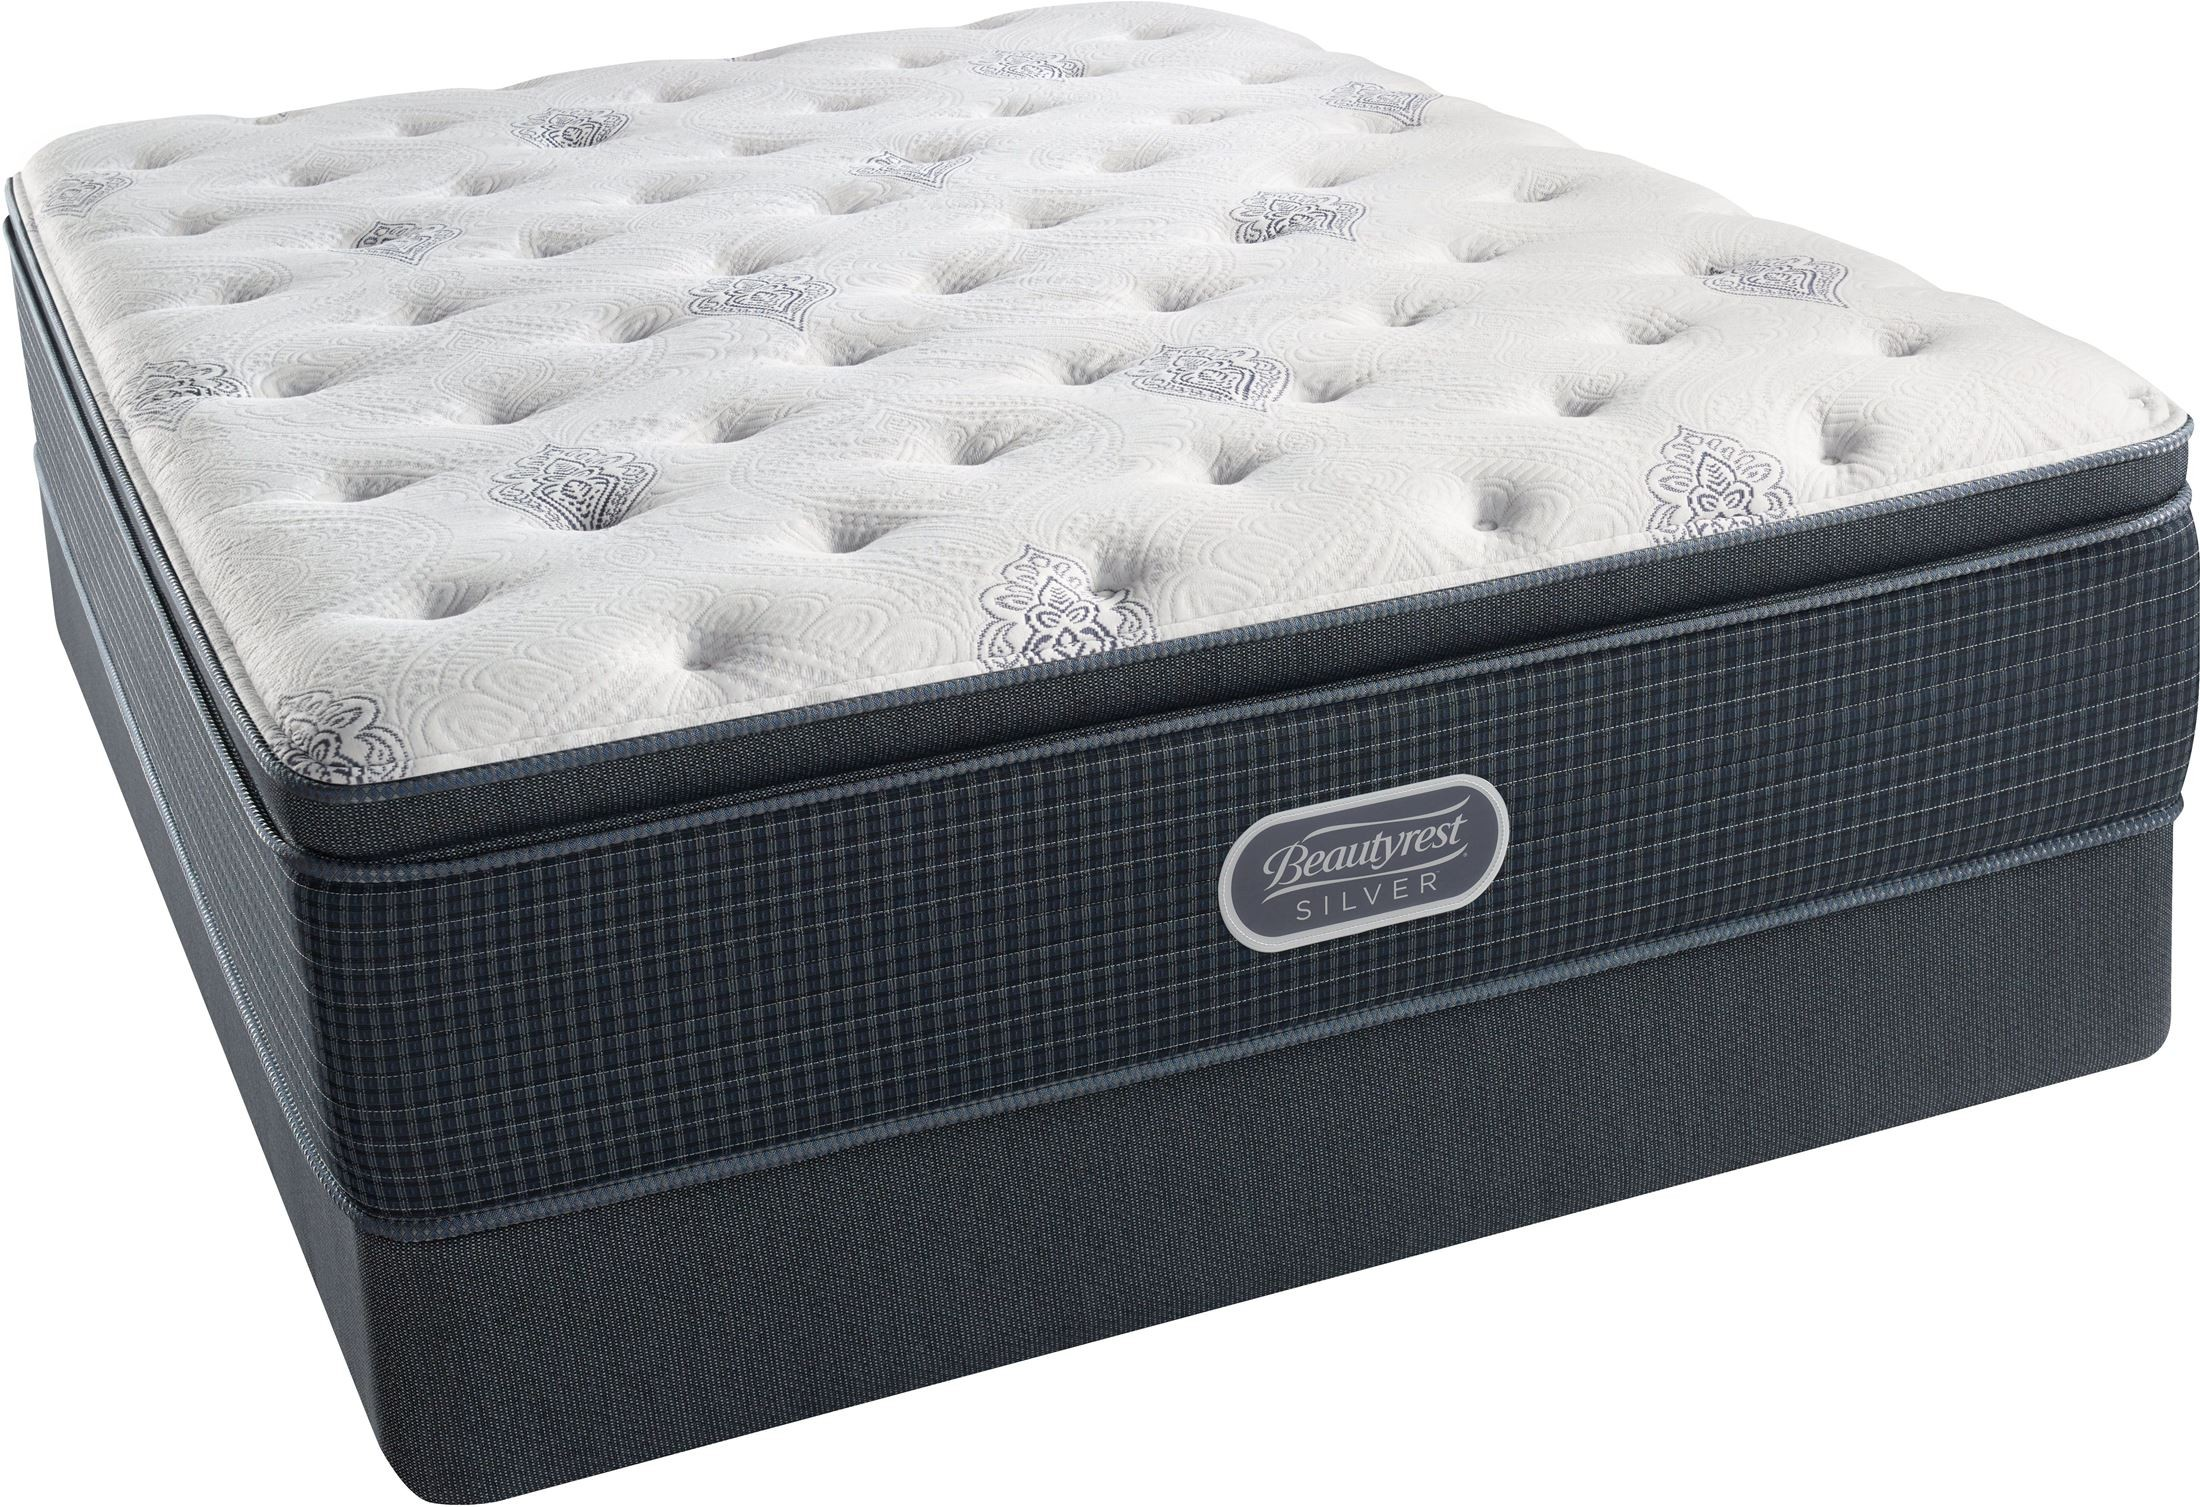 BR Recharge-BR Silver Offshore Mist Pillow Top Plush King ...